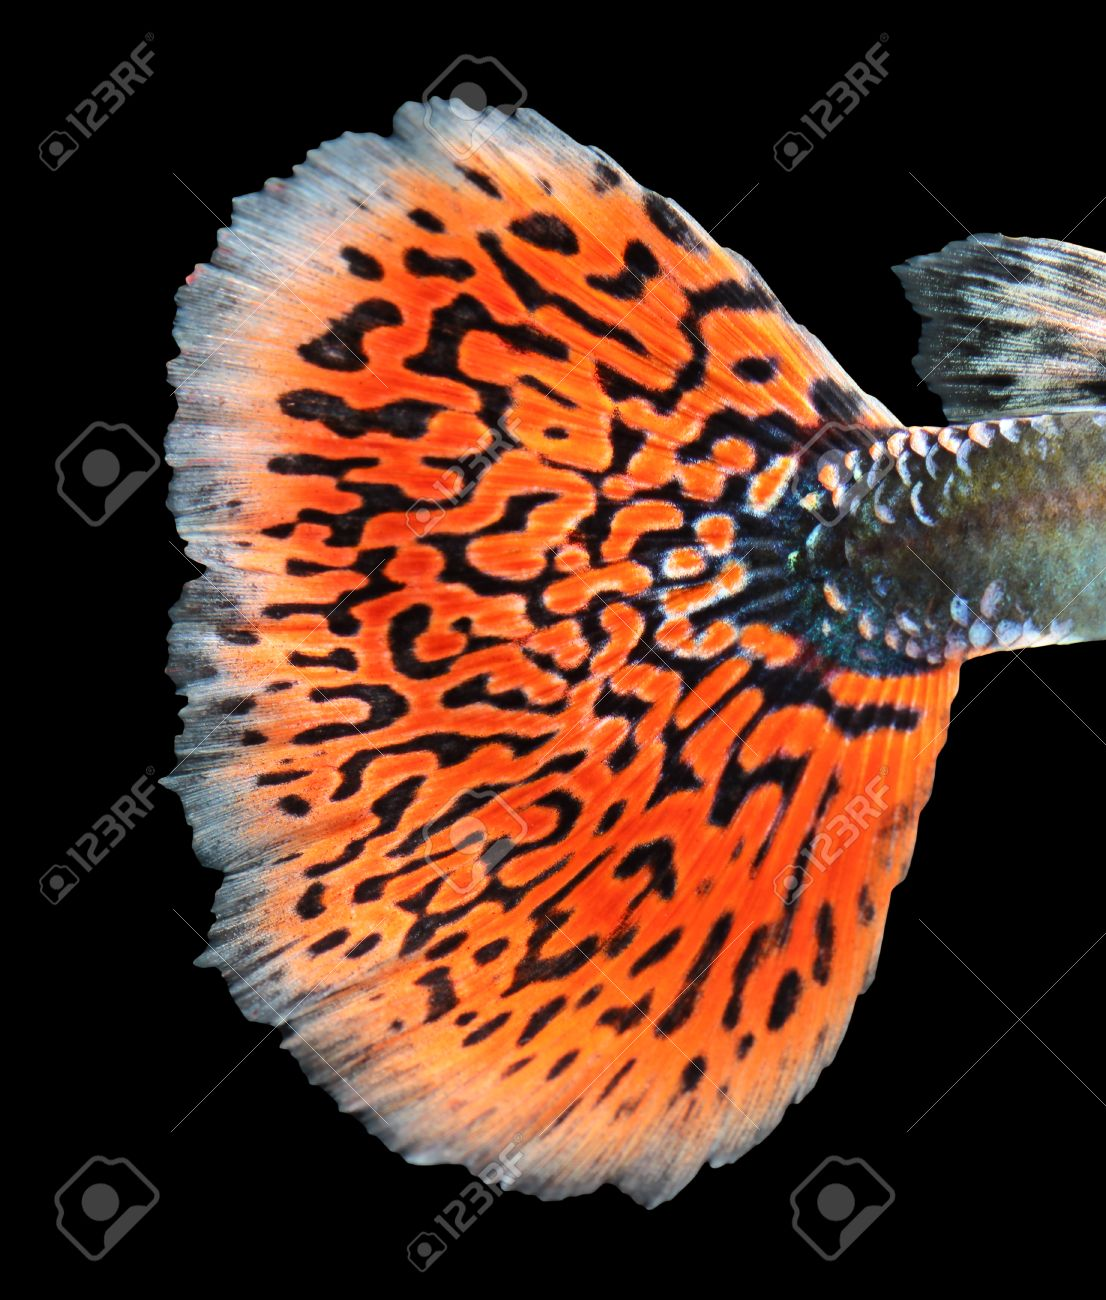 Texture Of Tail Guppy Fish Stock Photo, Picture And Royalty Free ...